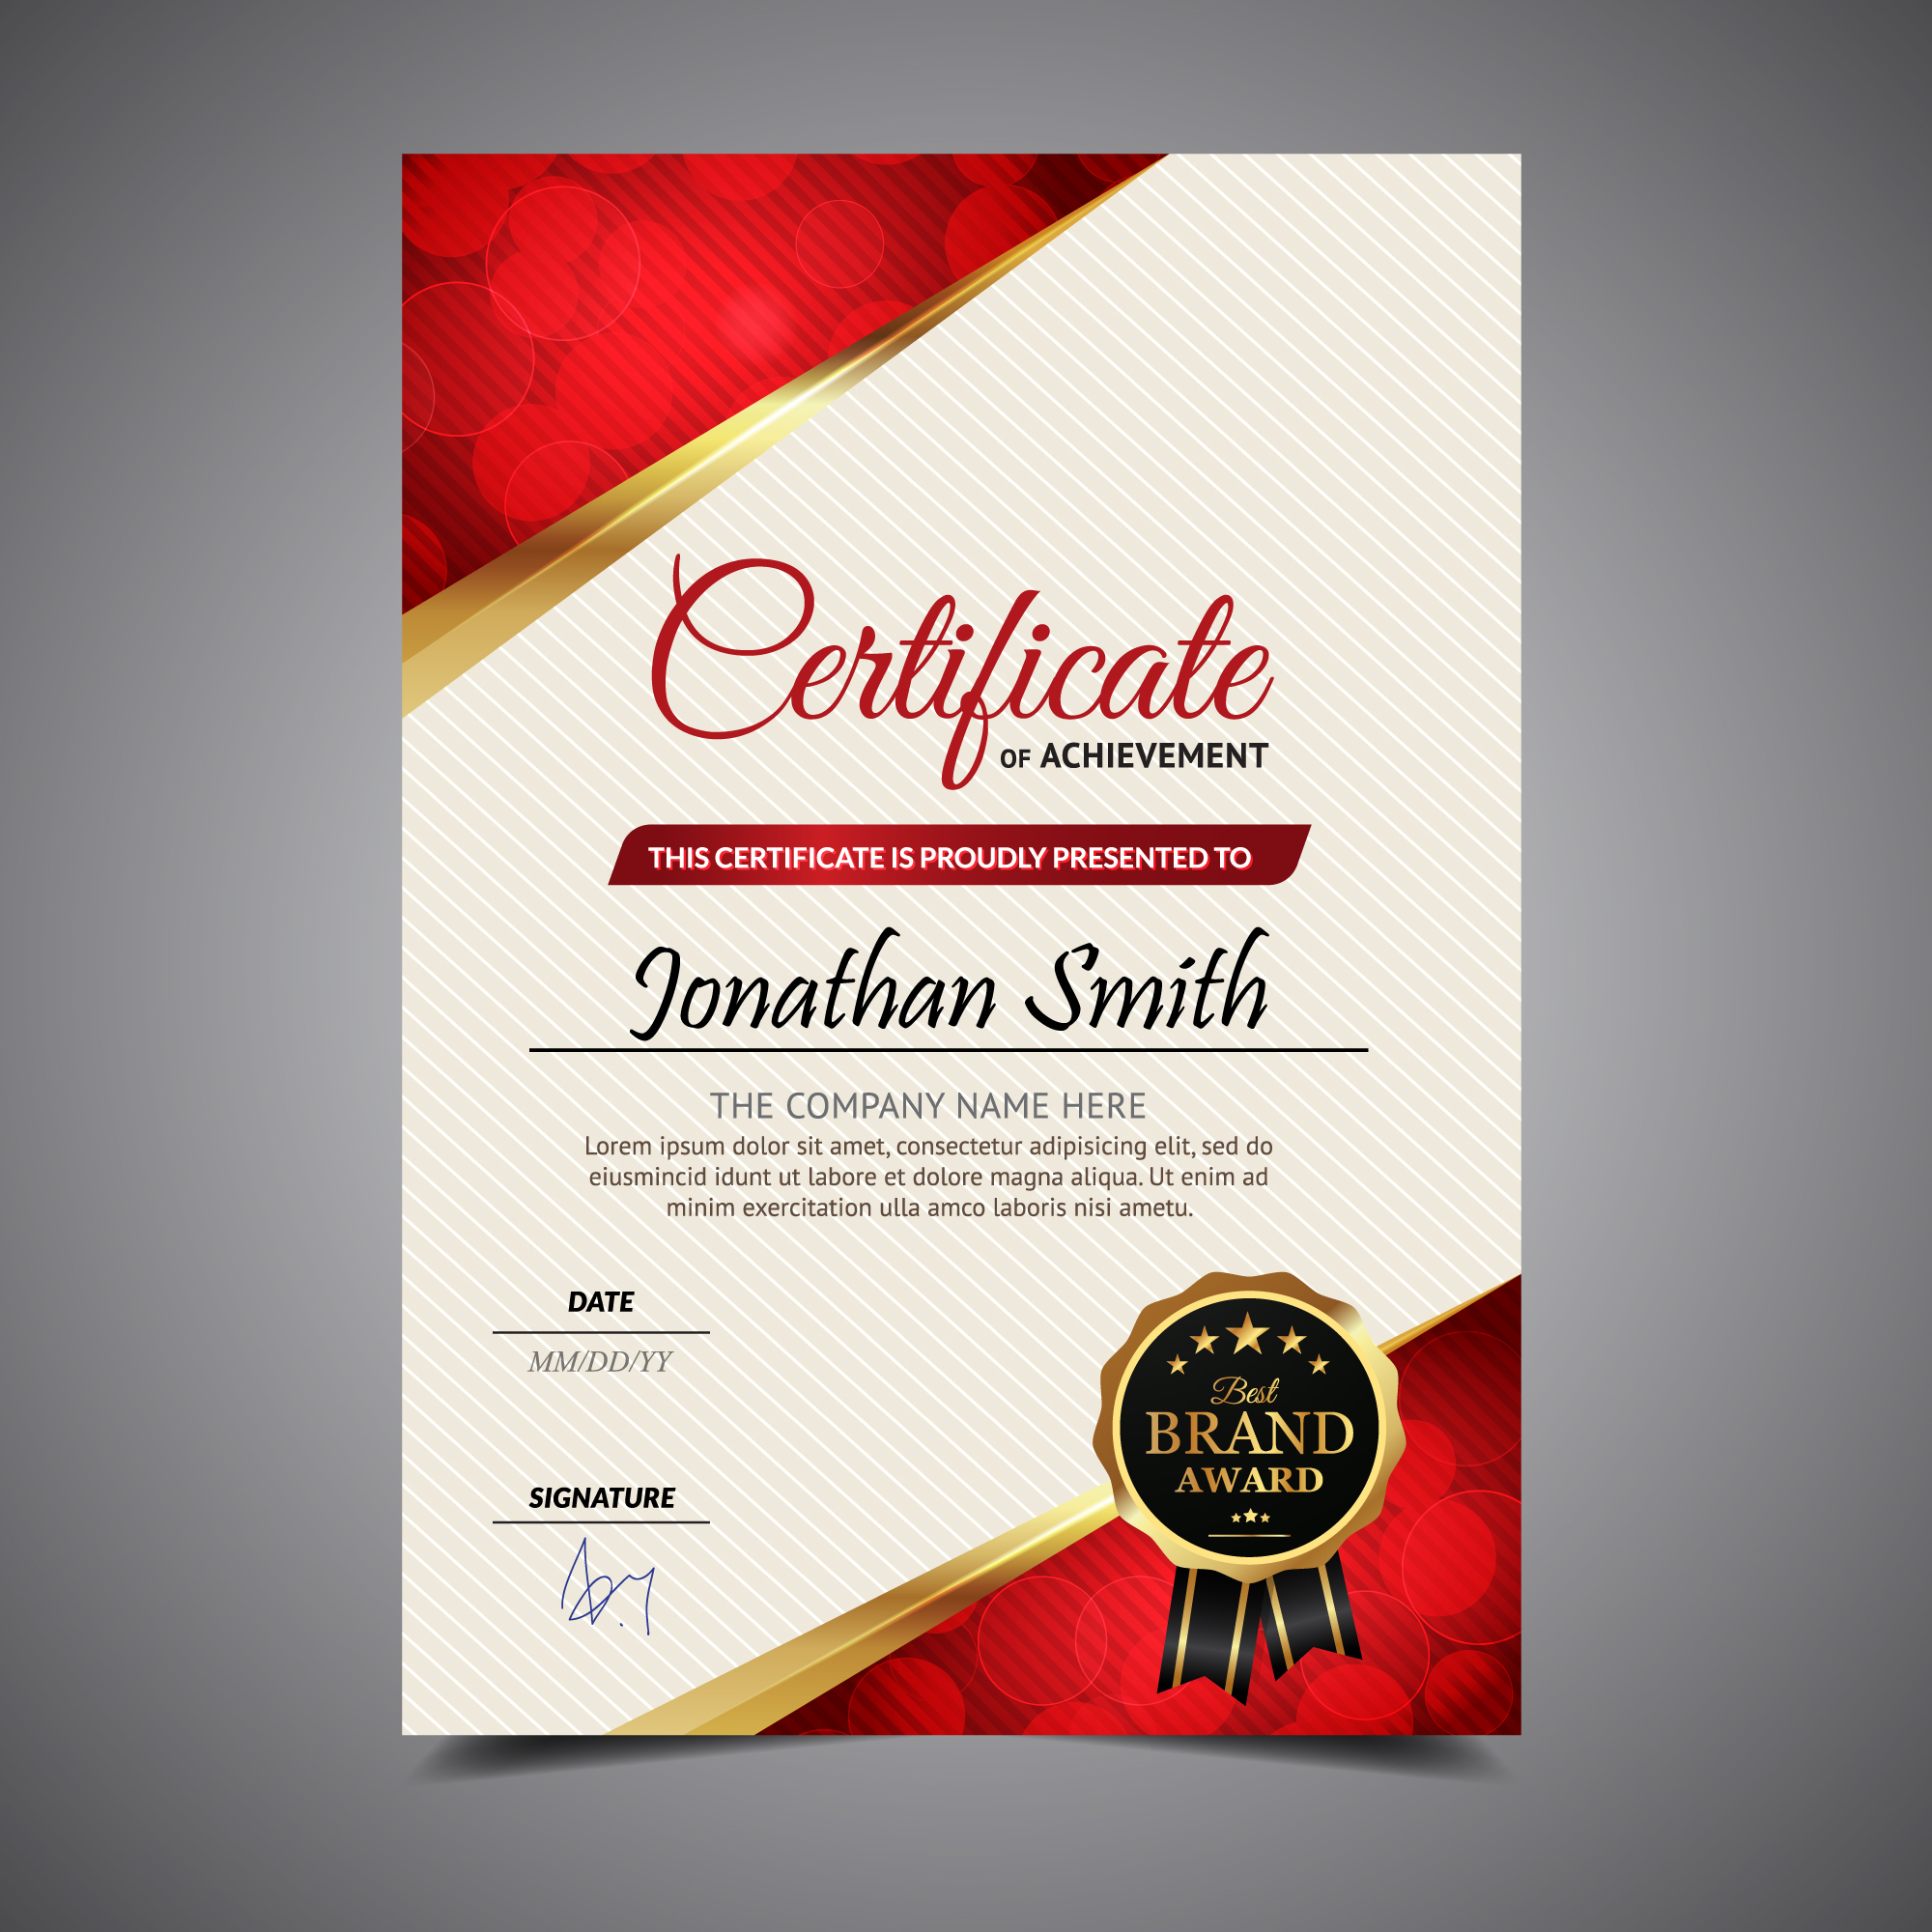 Red and white vertical certificate